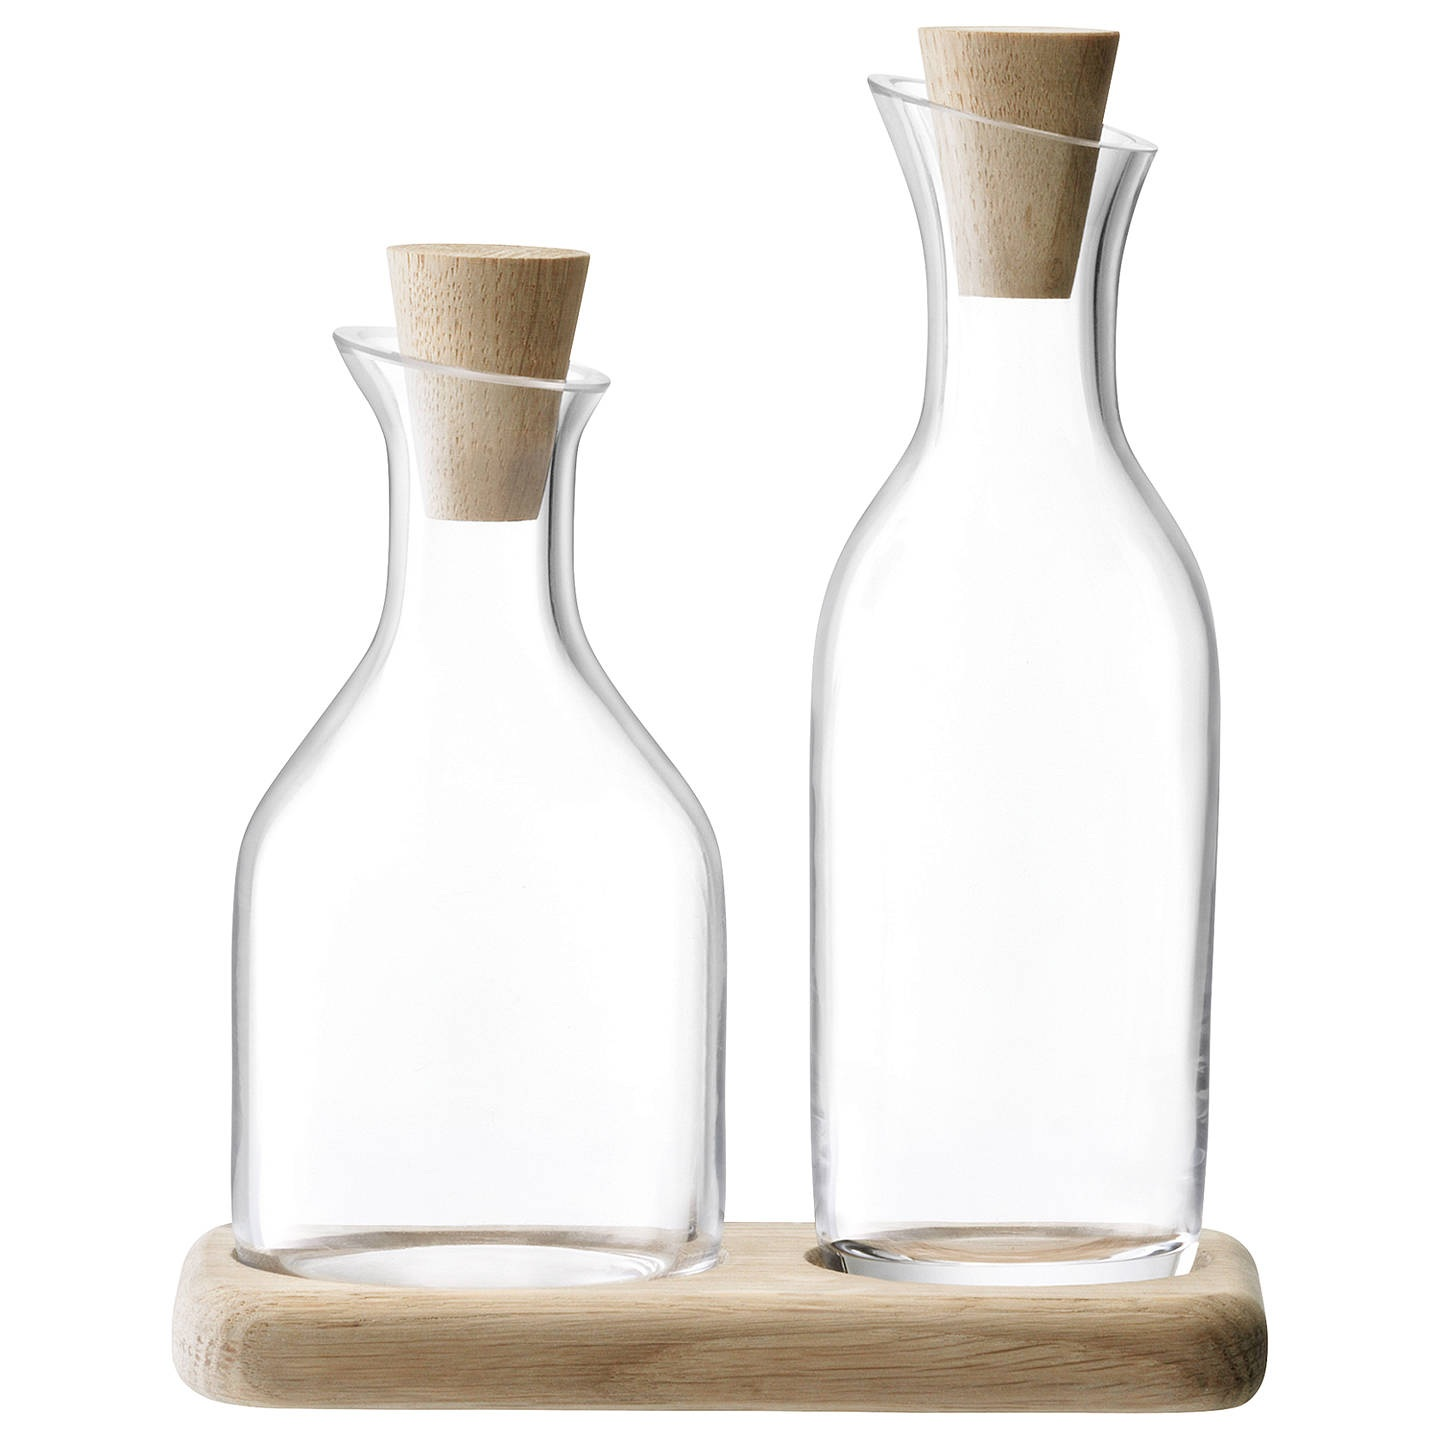 - This oil and vinegar set lives by our hob and I'm in love with it. It's so beautiful, and while it doesn't hold a lot of volume, it's really practical for us. They pour better than the bottles oil and vinegar come in and are great if we're serving a simple salad at a dinner party.